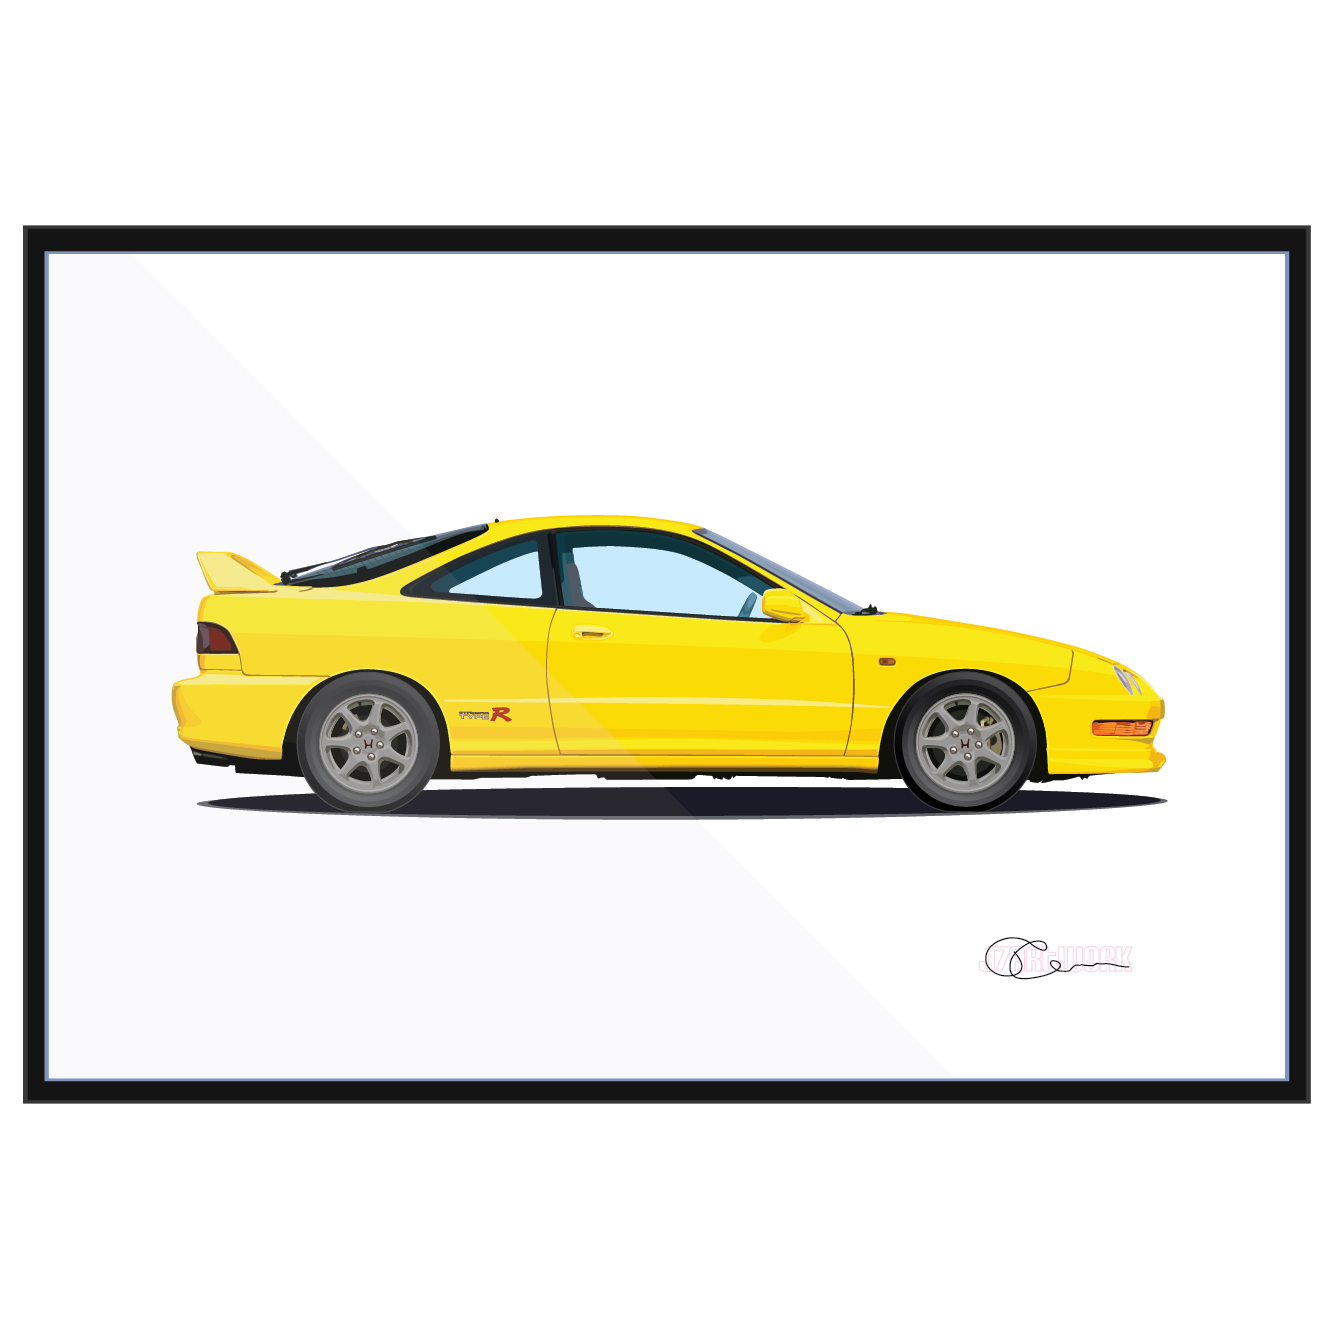 1999 Acura Integra Type R Print (Phoenix Yellow)